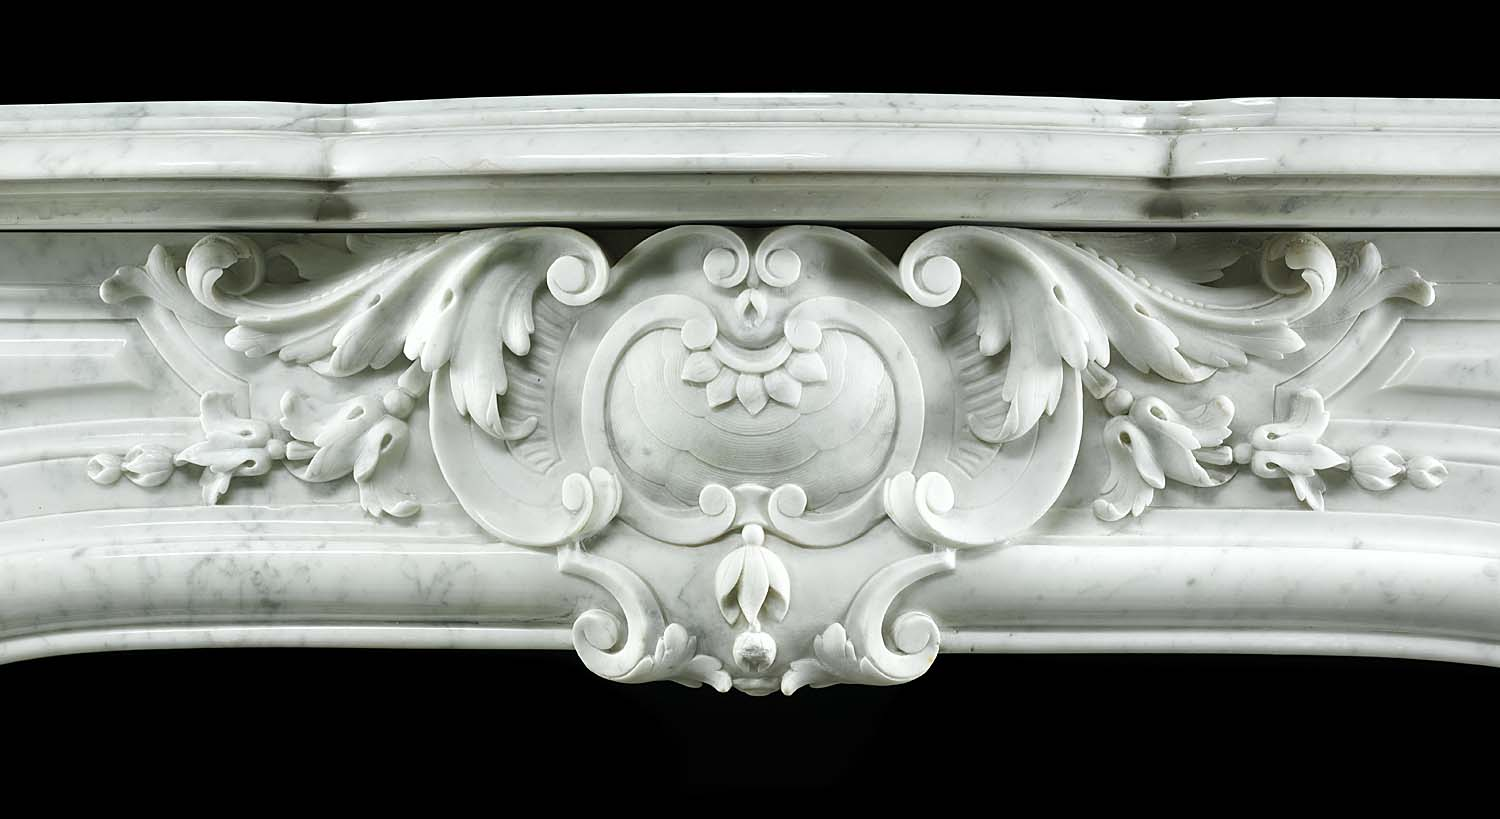 A very fine antique Rococo style Carrara white marble fireplace surround